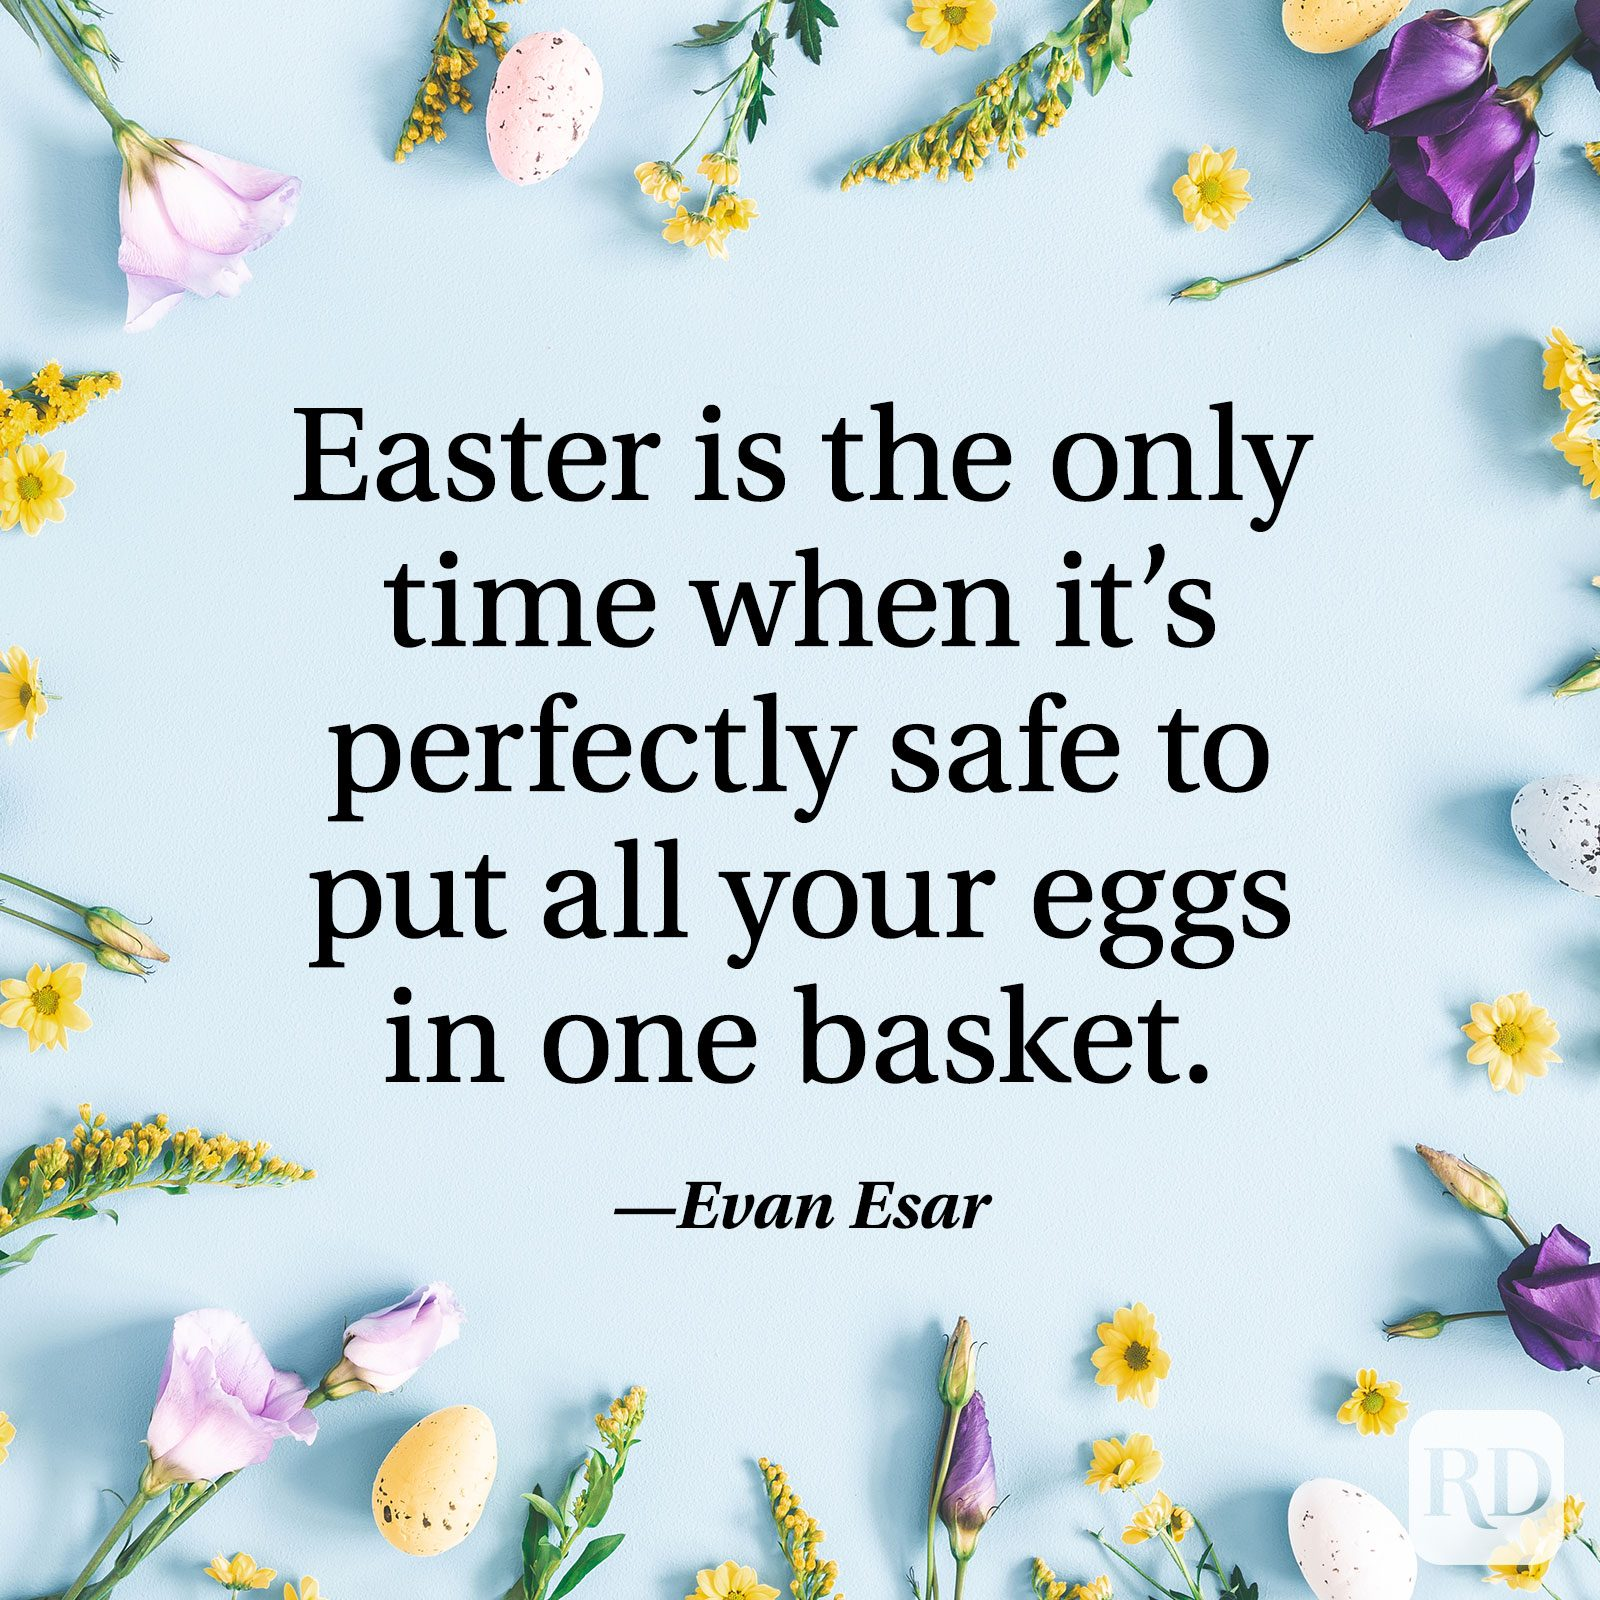 """Easter is the only time when it's perfectly safe to put all your eggs in one basket."" — Evan Esar"